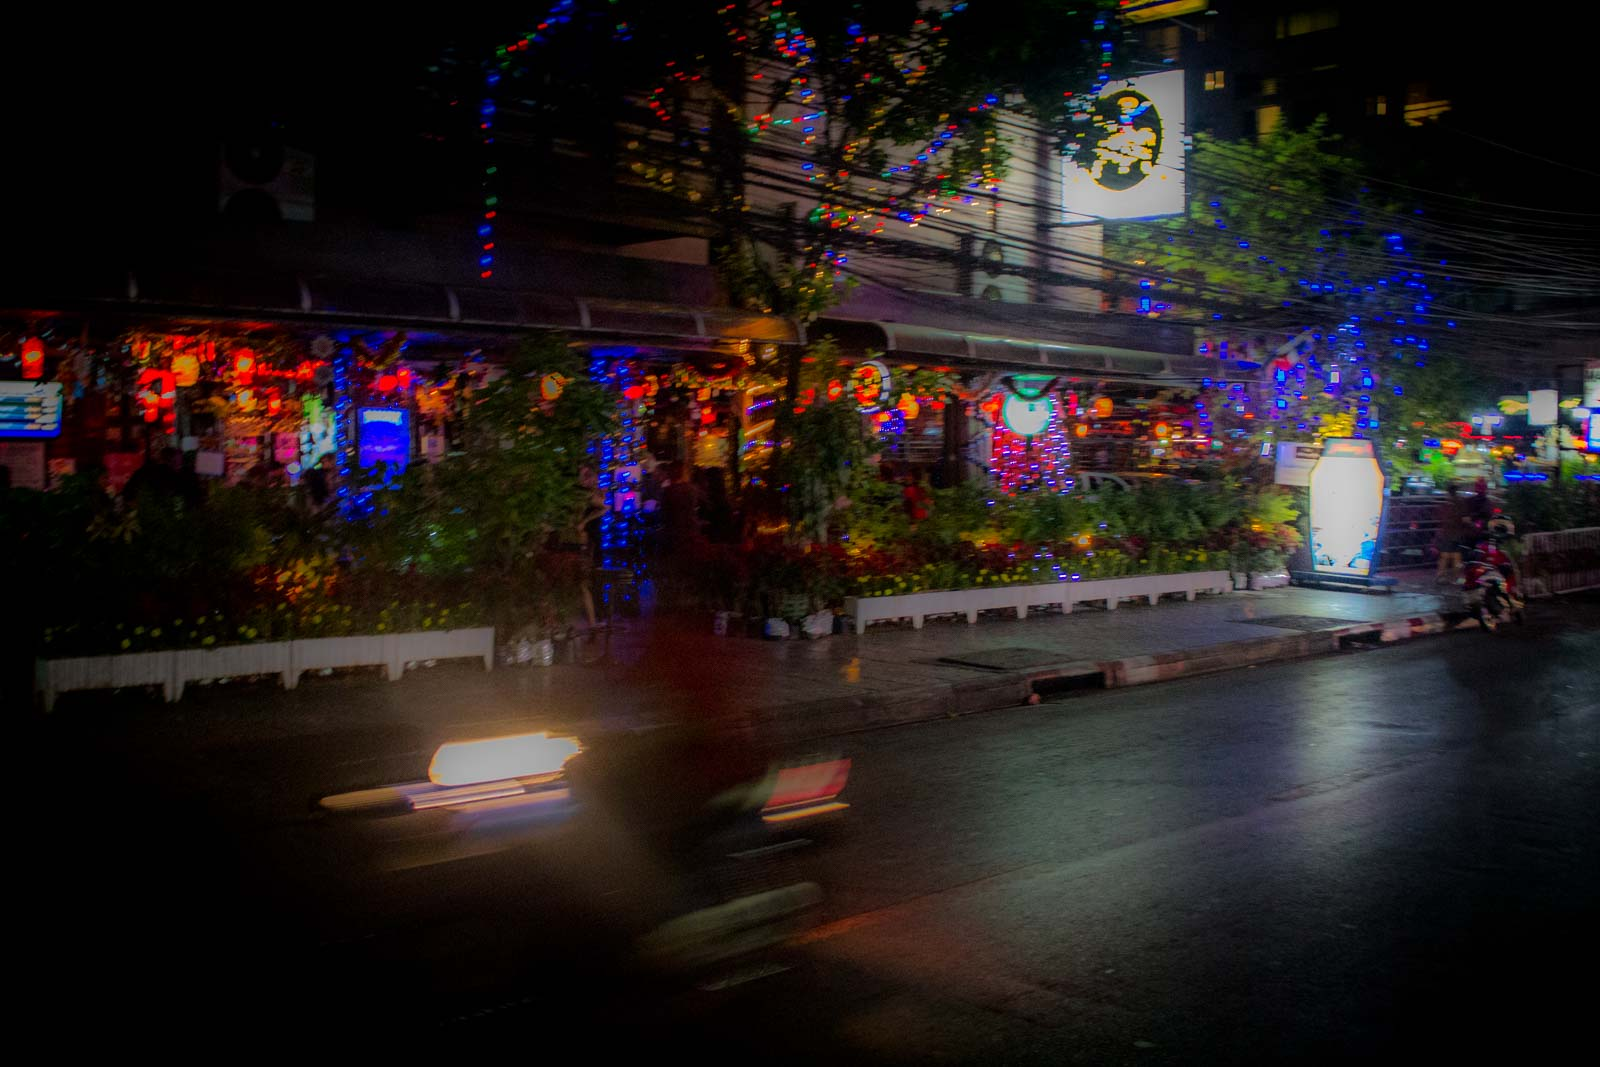 Crazy Bangkok - a hedonist's wet dream